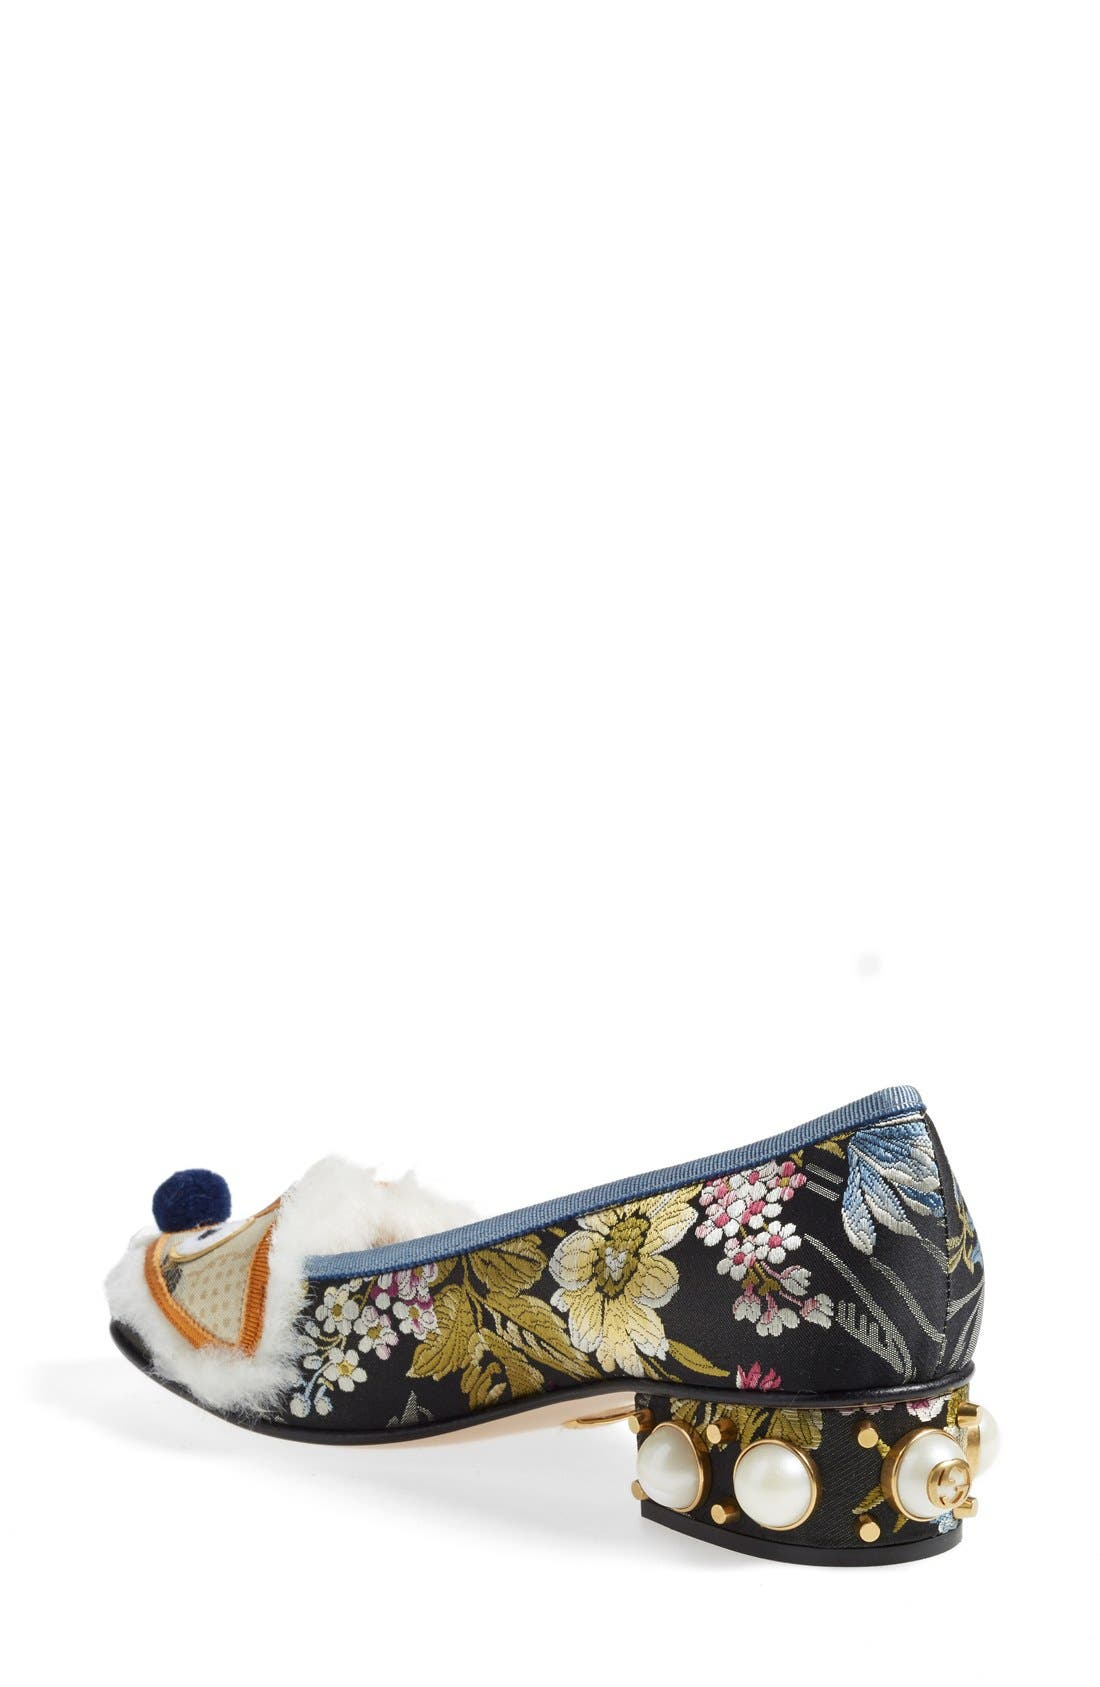 GUCCI, 'Kimberly' Embellished Pump, Alternate thumbnail 2, color, 020